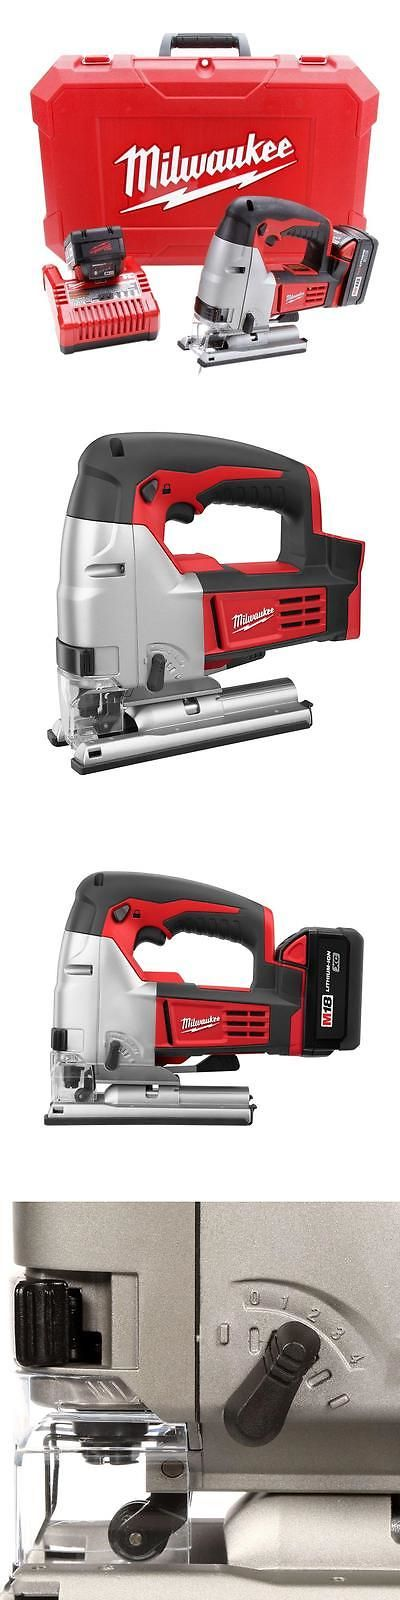 Jig and Scroll Saws 122834: Milwaukee 2645-22 M18 18V Li-Ion Cordless Jigsaw Kit -> BUY IT NOW ONLY: $349 on eBay!